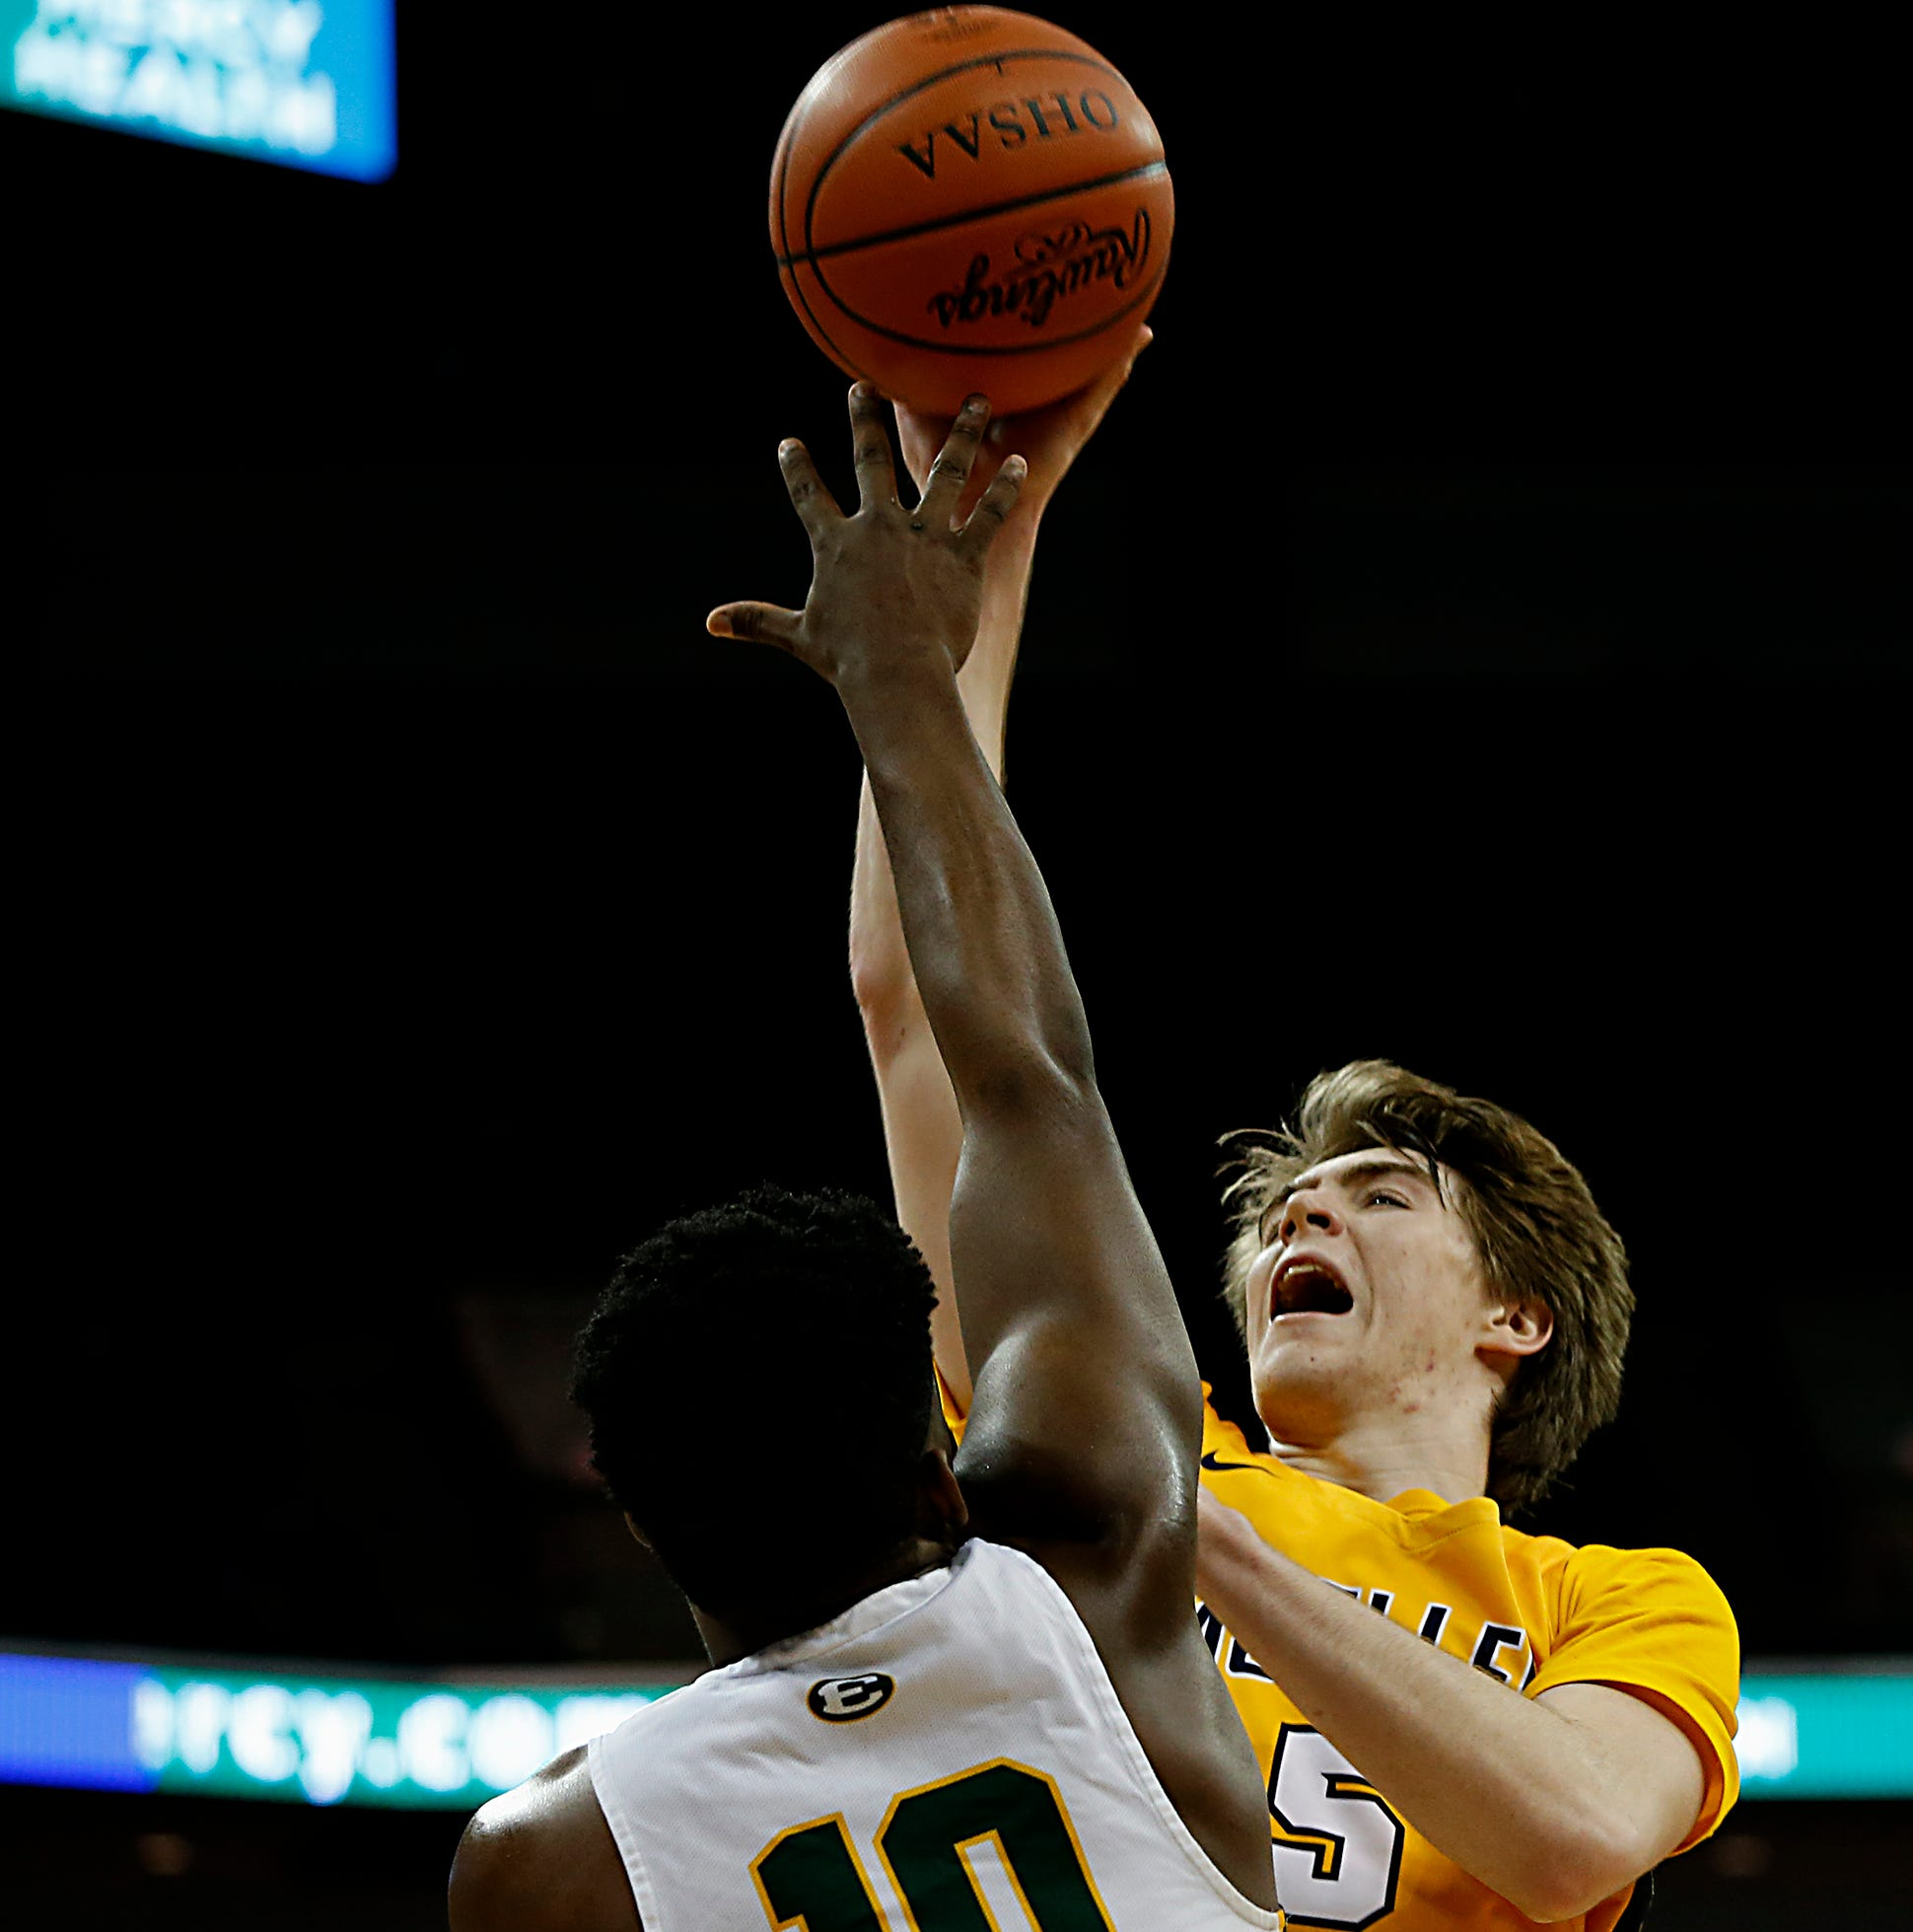 Follow live: Moeller basketball state championship game with St. Vincent-St. Mary